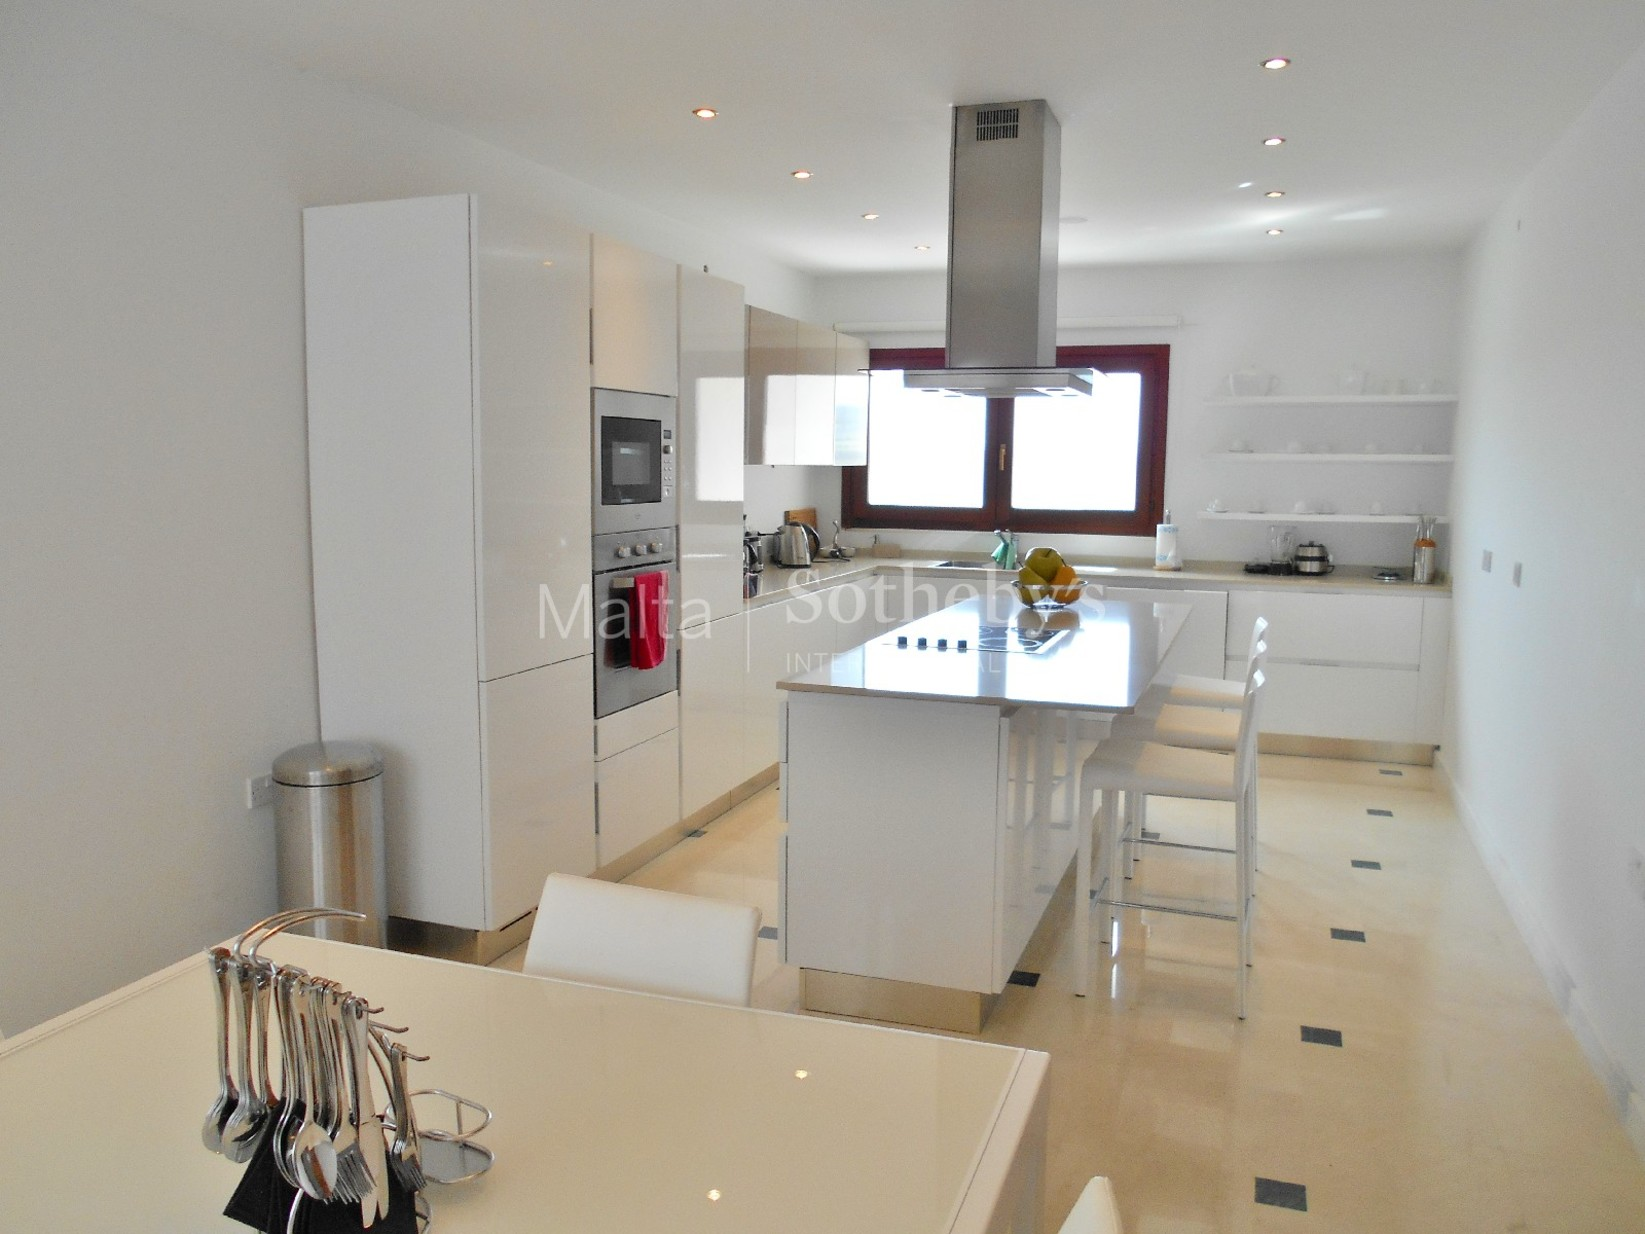 3 bed Penthouse For Rent in St Paul's Bay, St Paul's Bay - thumb 2